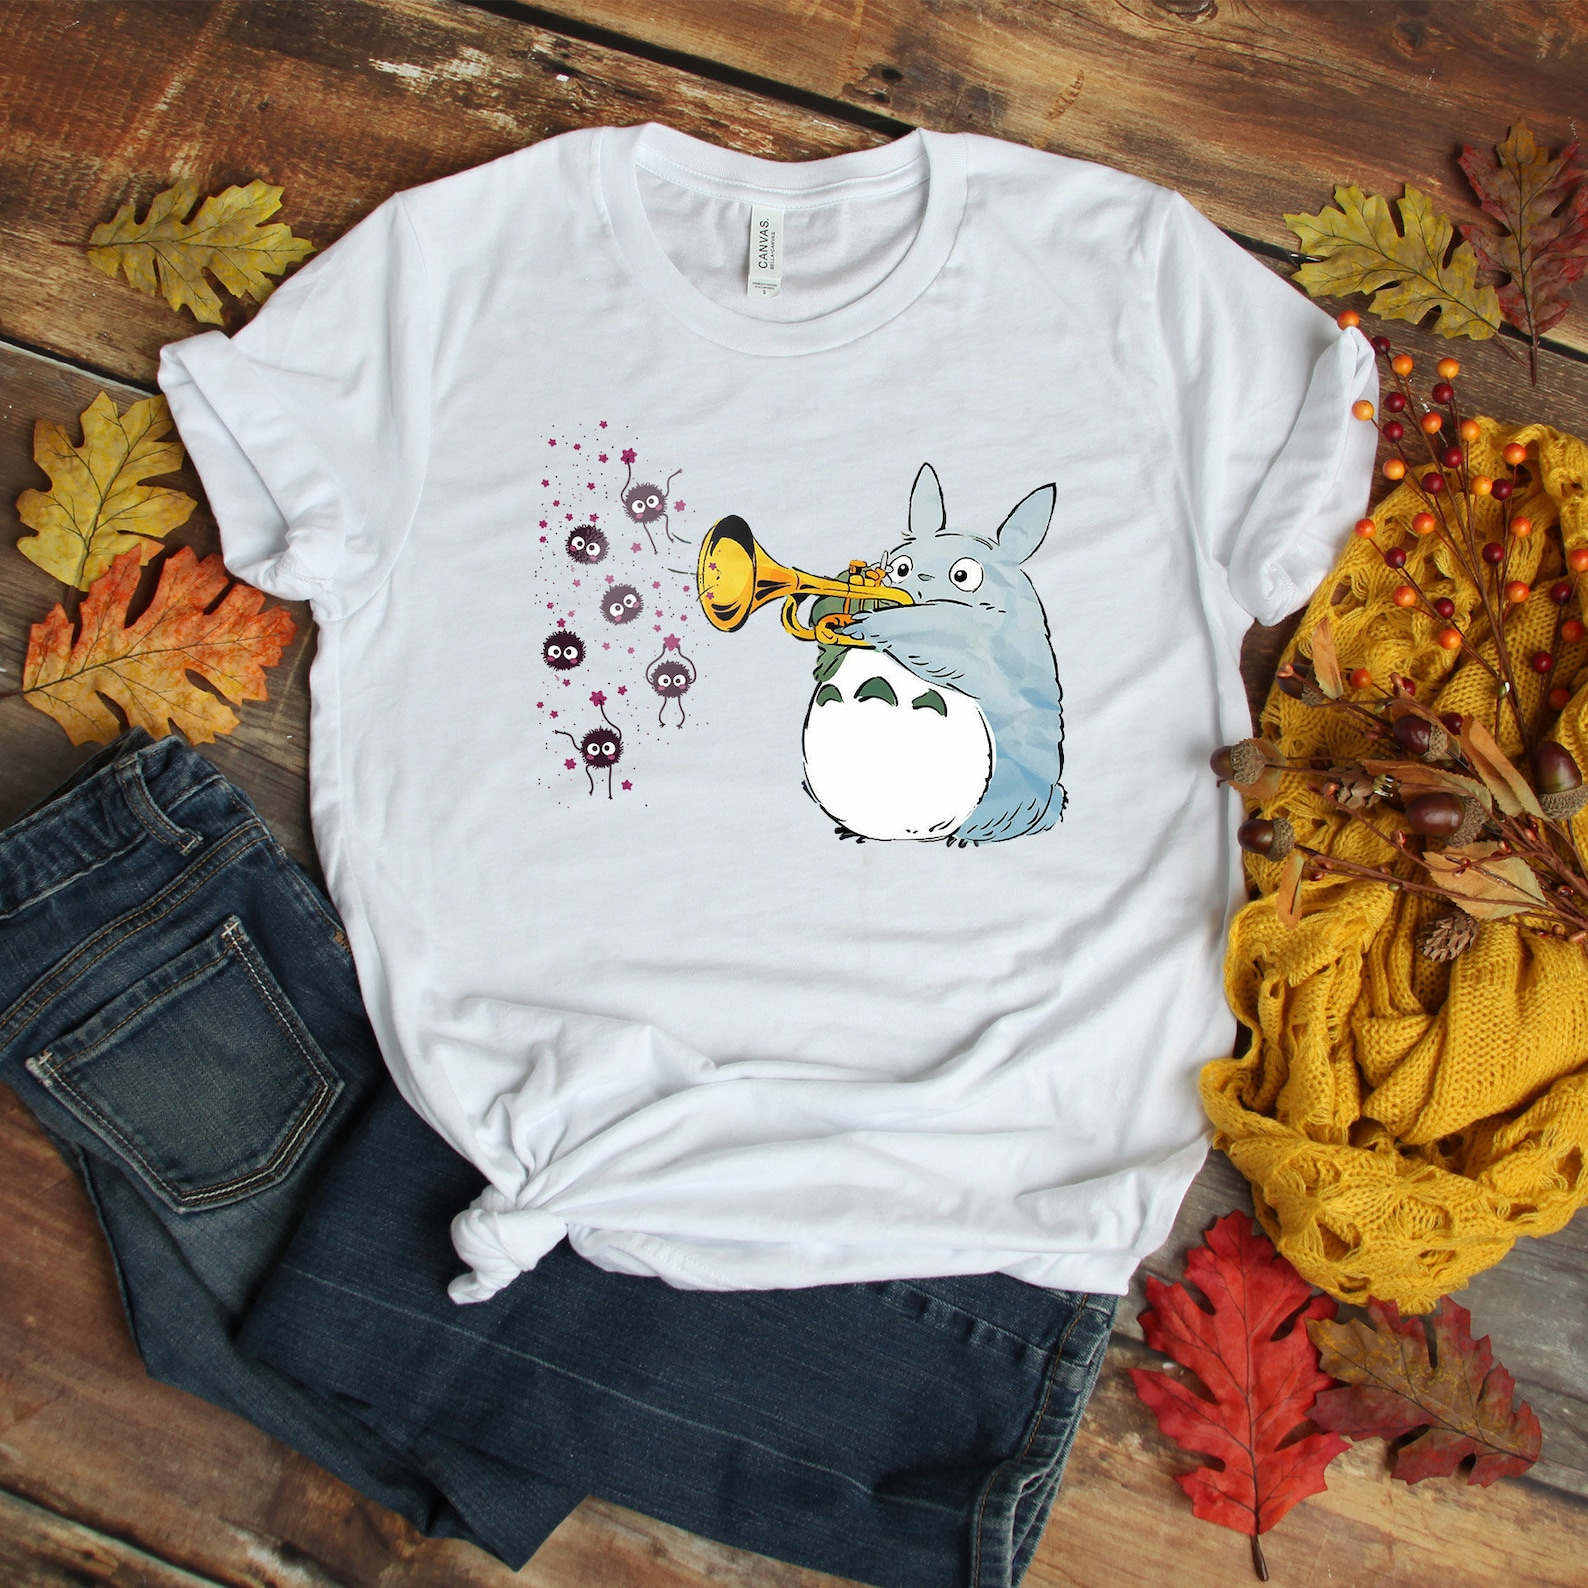 Cute Totoro Women T-Shirt, Studio Ghibli T-Shirt